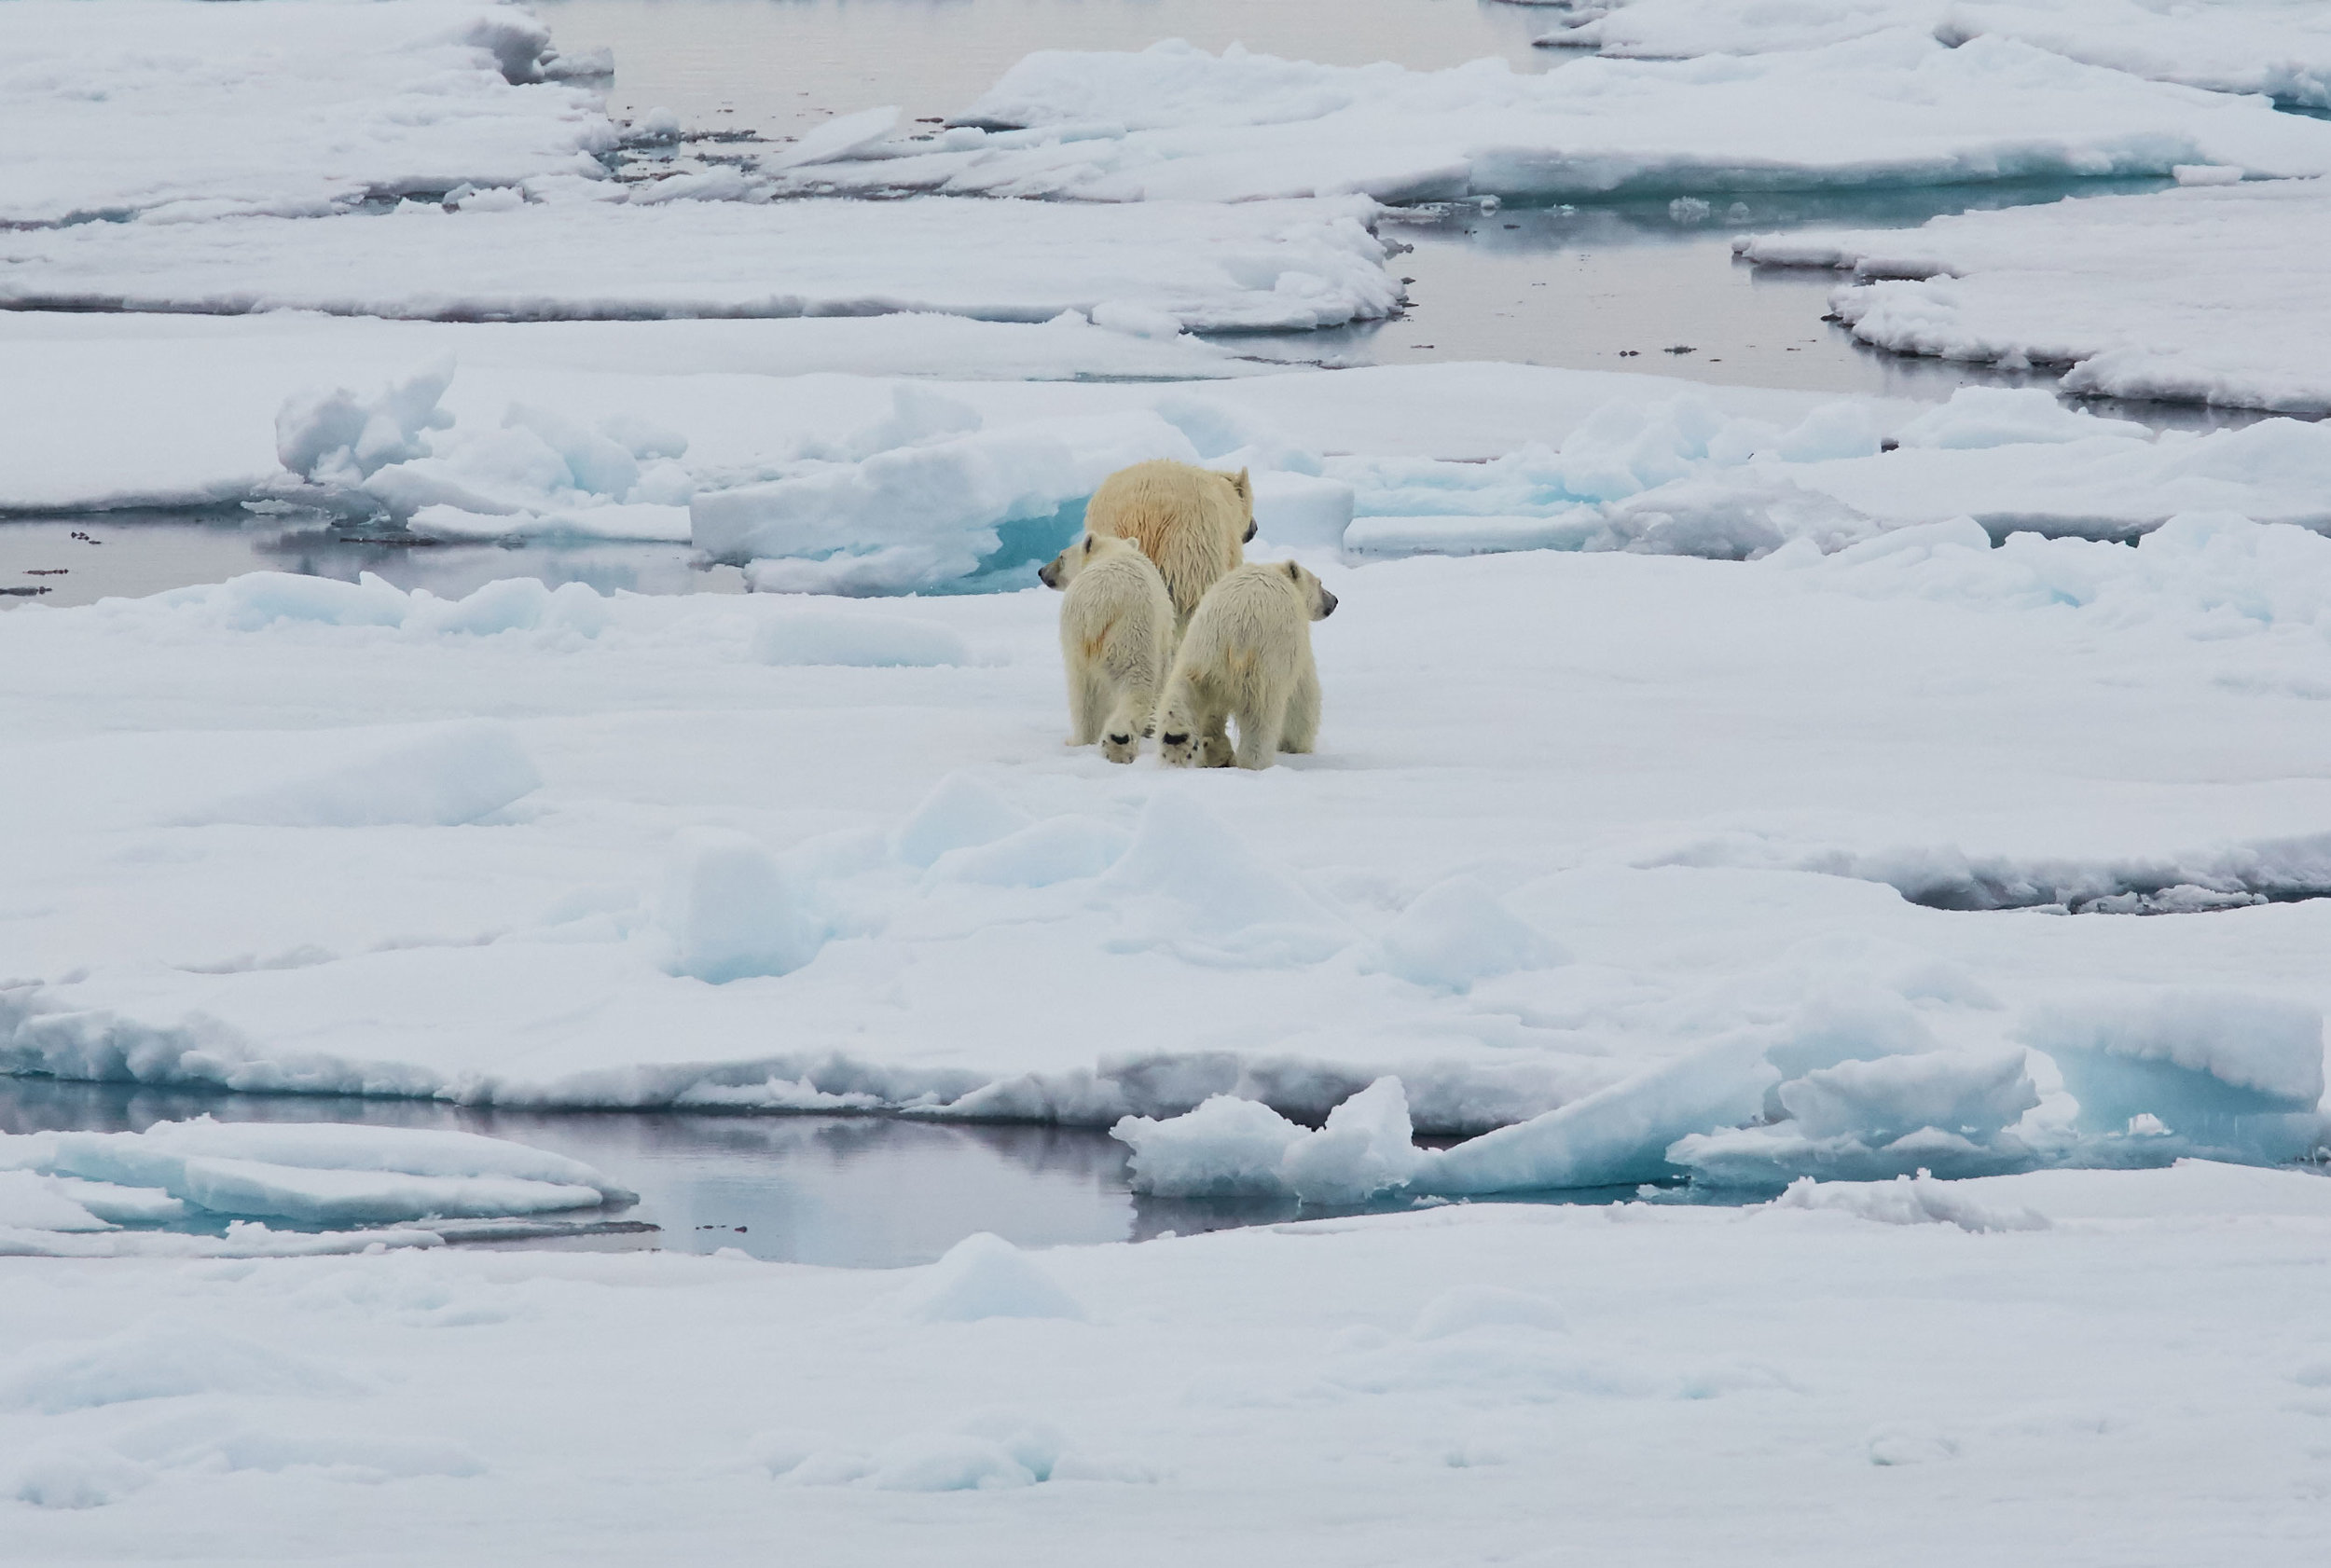 North-Spitsbergen-Polar-Bear-Special,-June-©-Markus-Eichenberger-Oceanwide-Expeditions-(60).jpg_Markus-Eichenberger.jpg